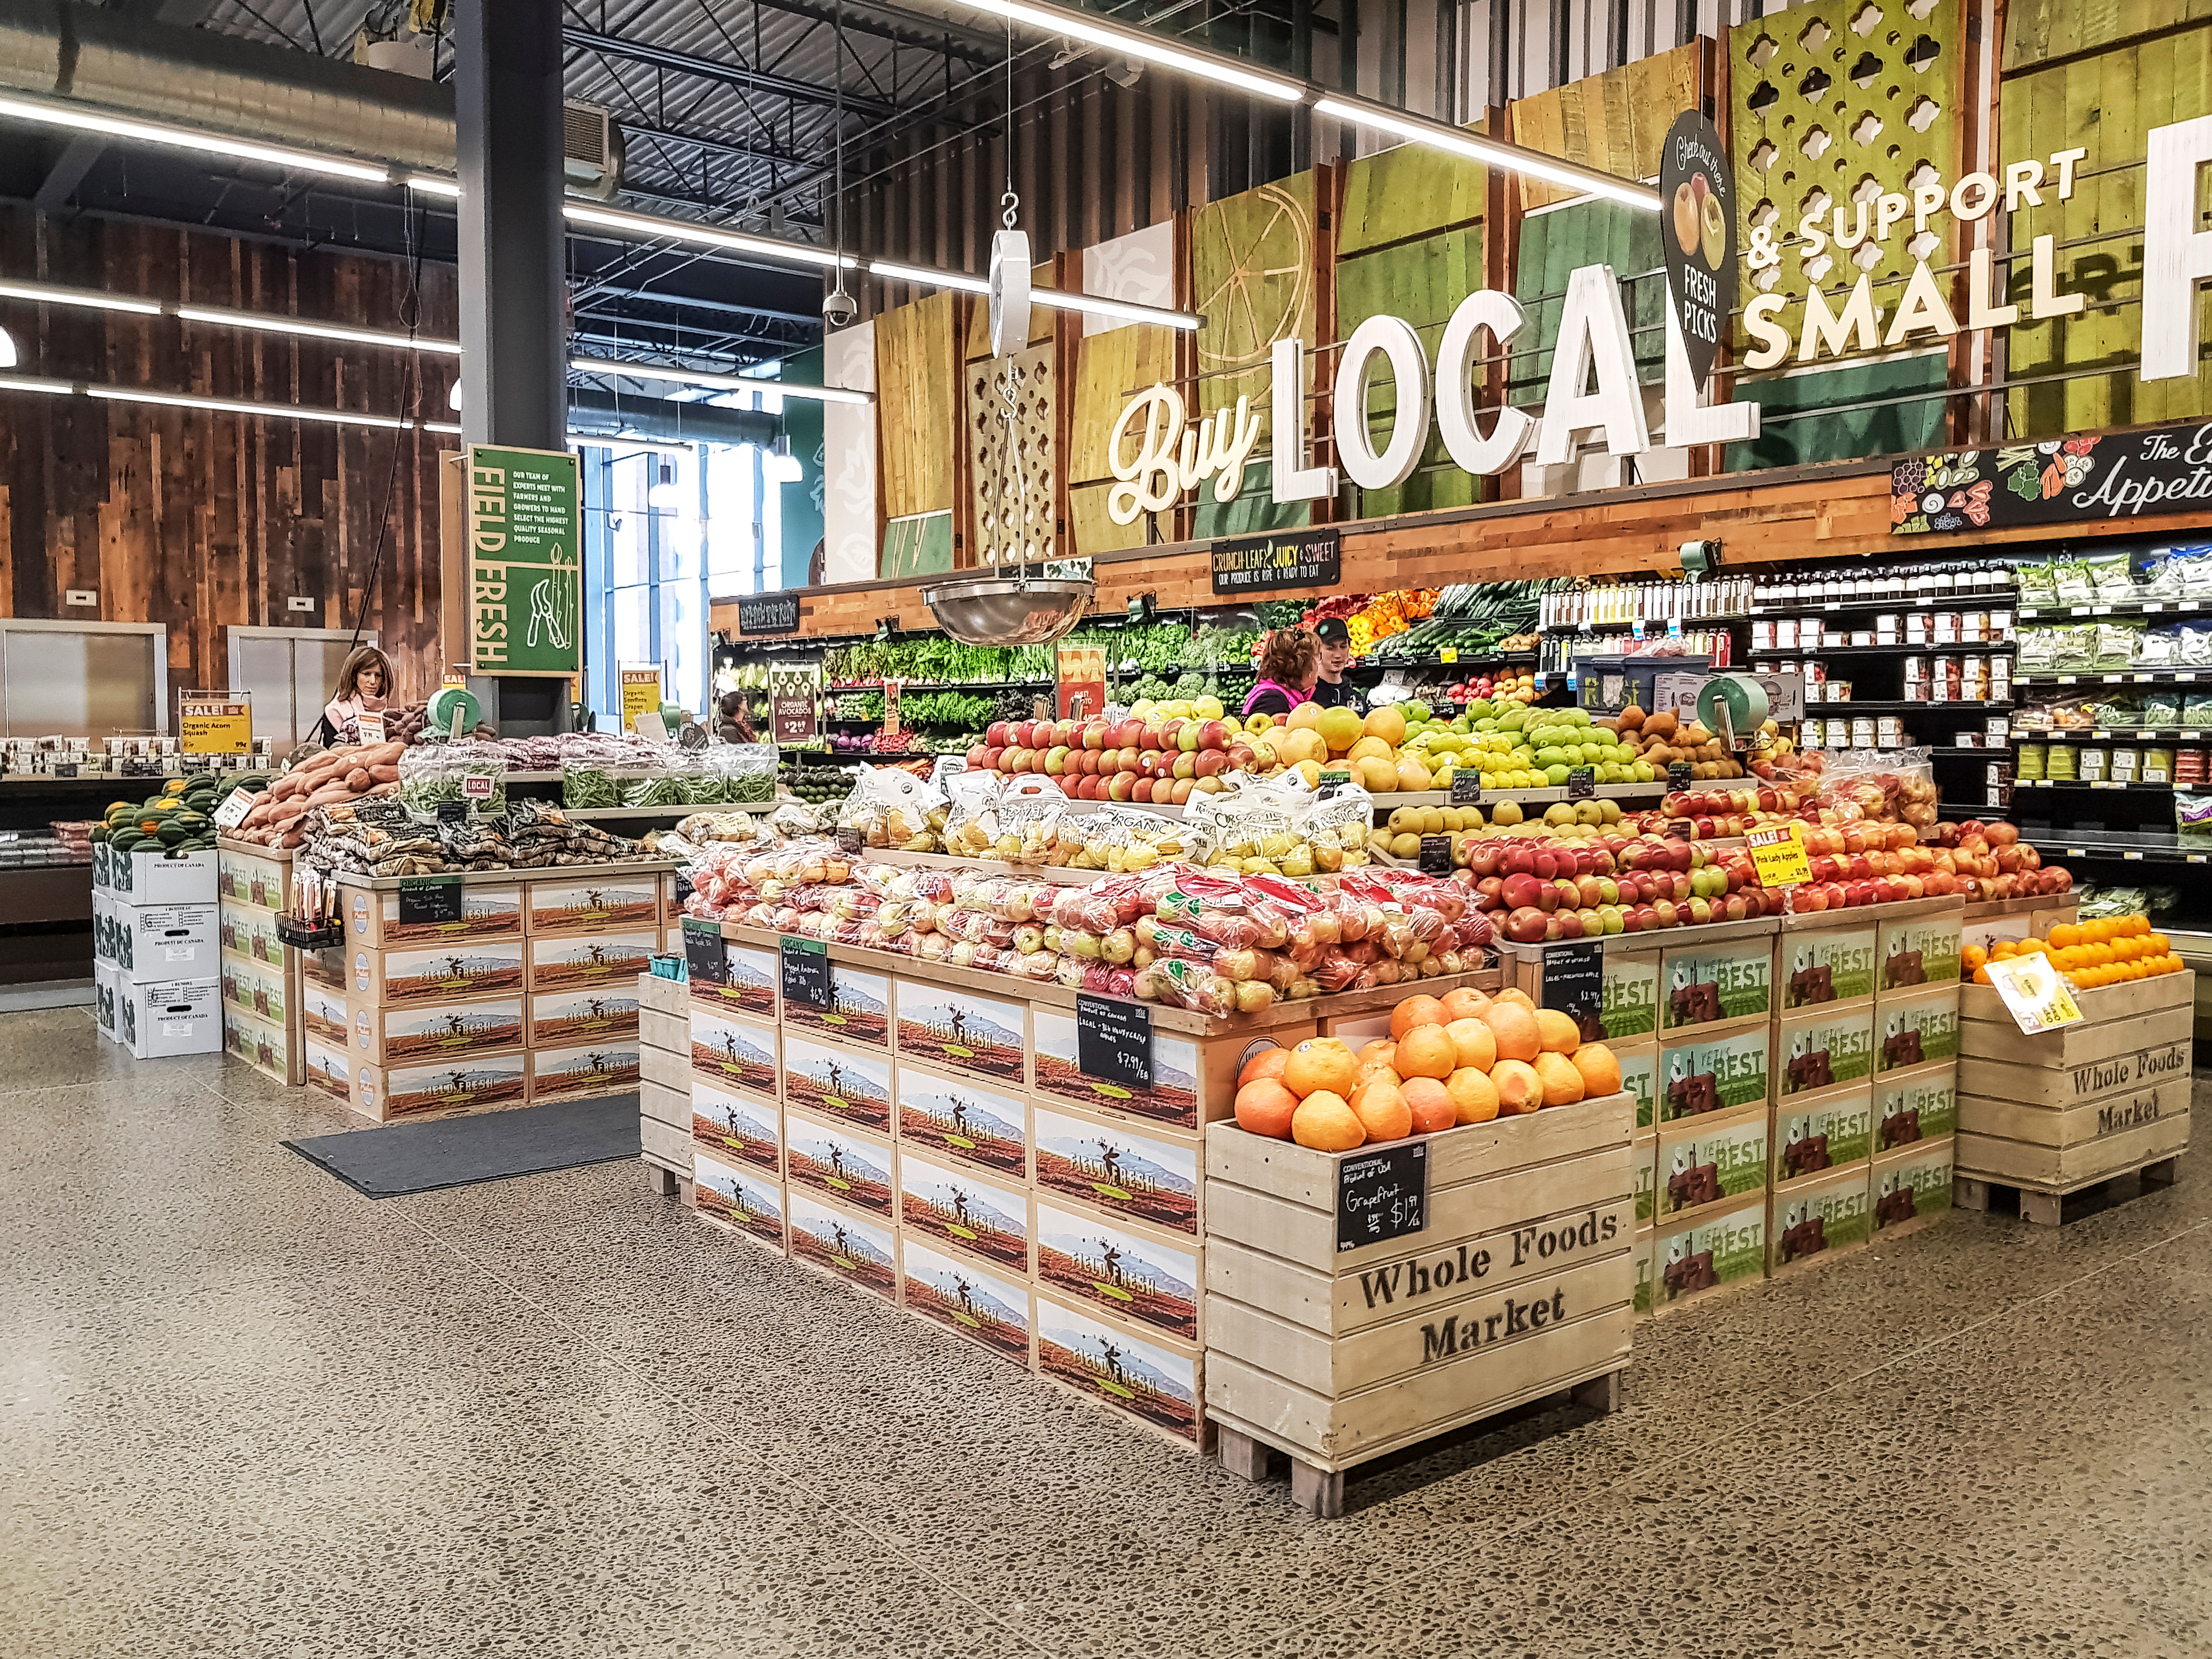 Centralized buying at Whole Foods goes directly against its ethos